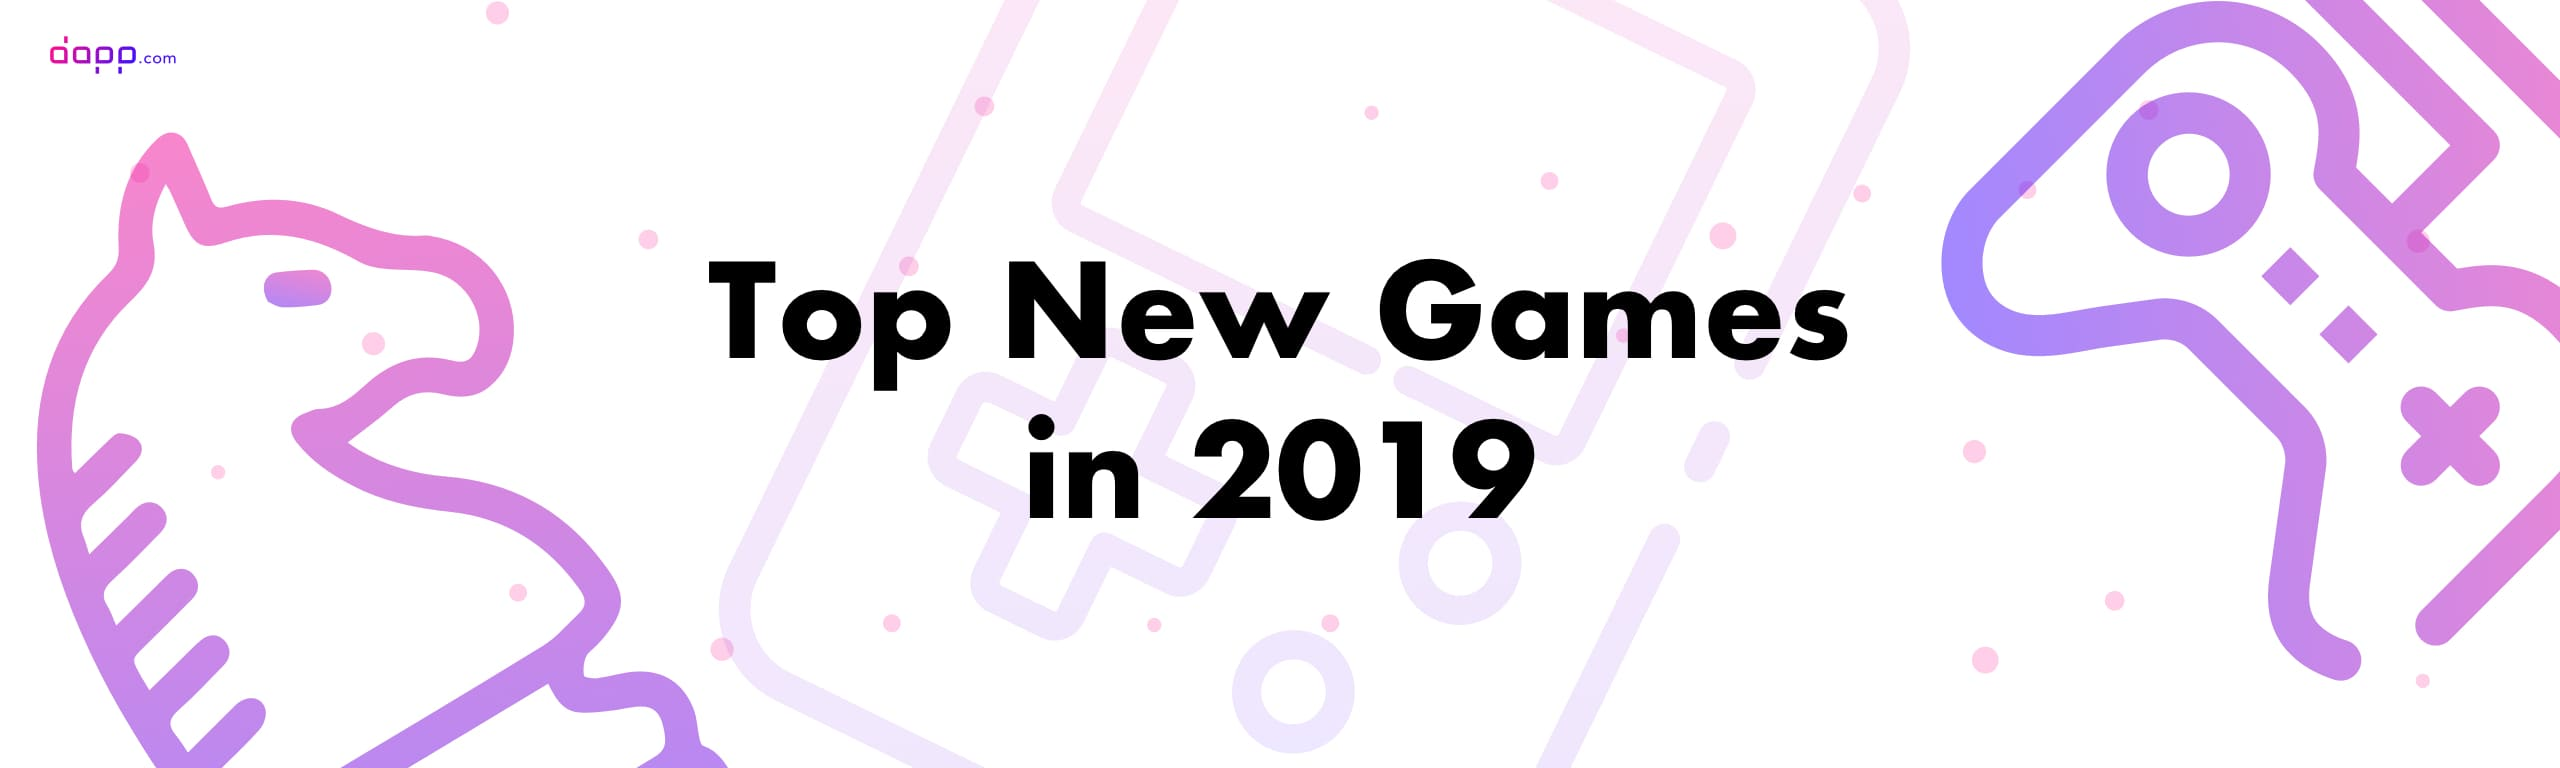 Games Keeping Us Glued to the Couch in 2019 By Dapp com